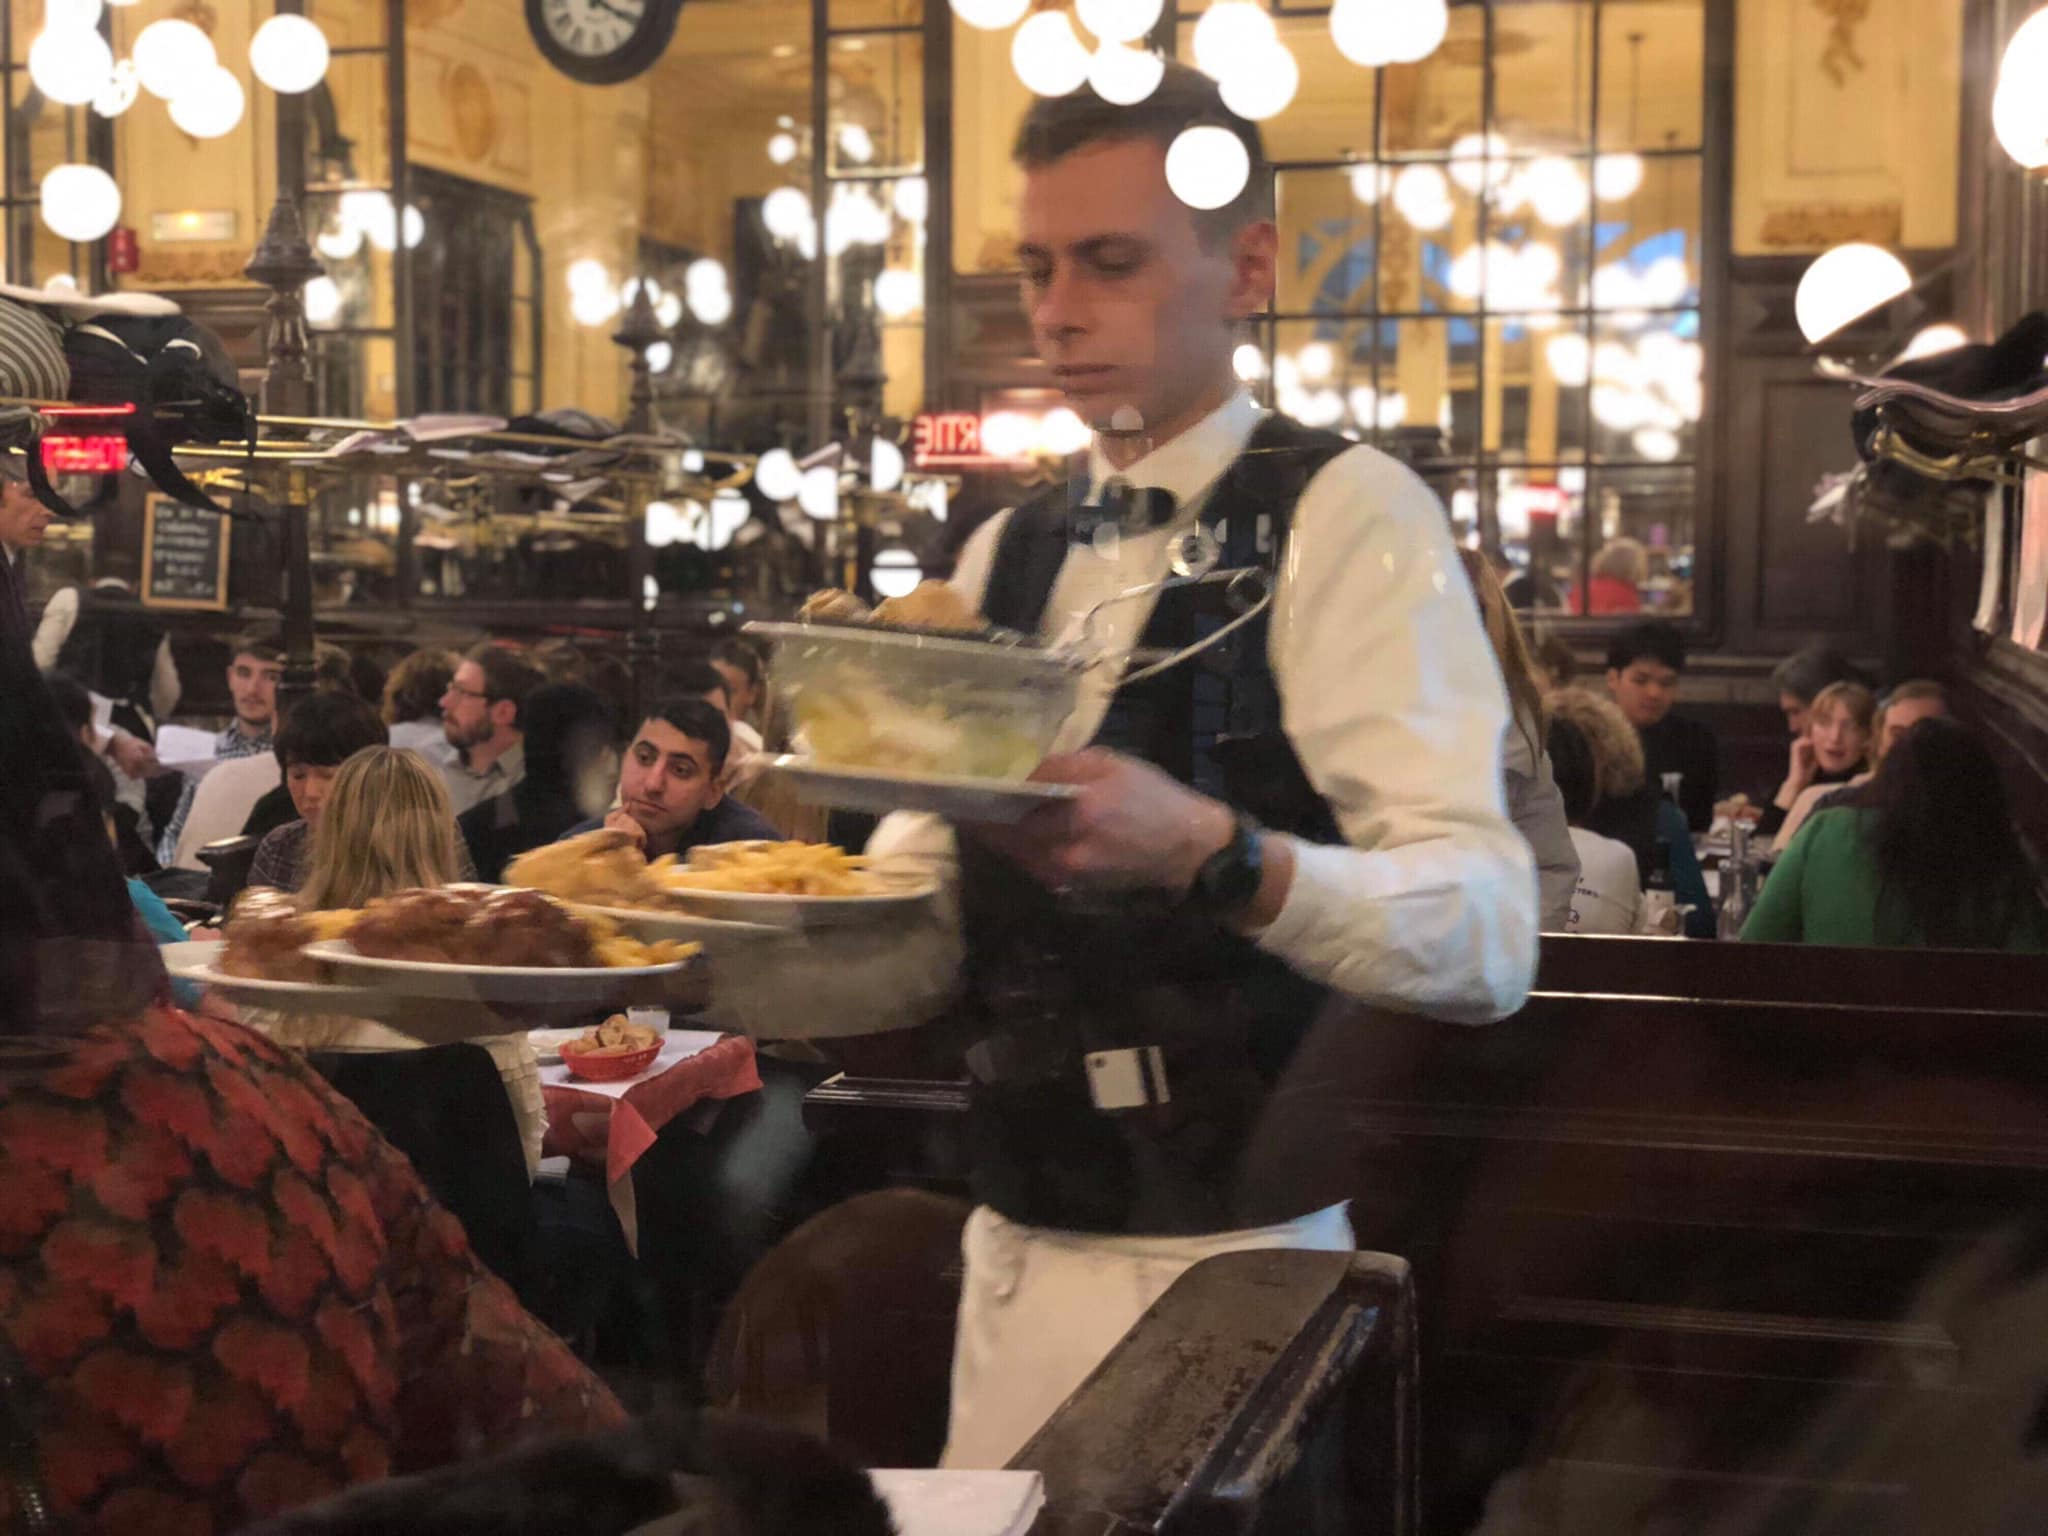 Go to the Bouillon Chartier on Rue du Faubourg Montmartre, a brasserie founded in 1896. The ambience is incredible in this 300 hundred seat restaurant that is open 365 days a year. You absolutely need to go there, right after the Eiffel Tower! -